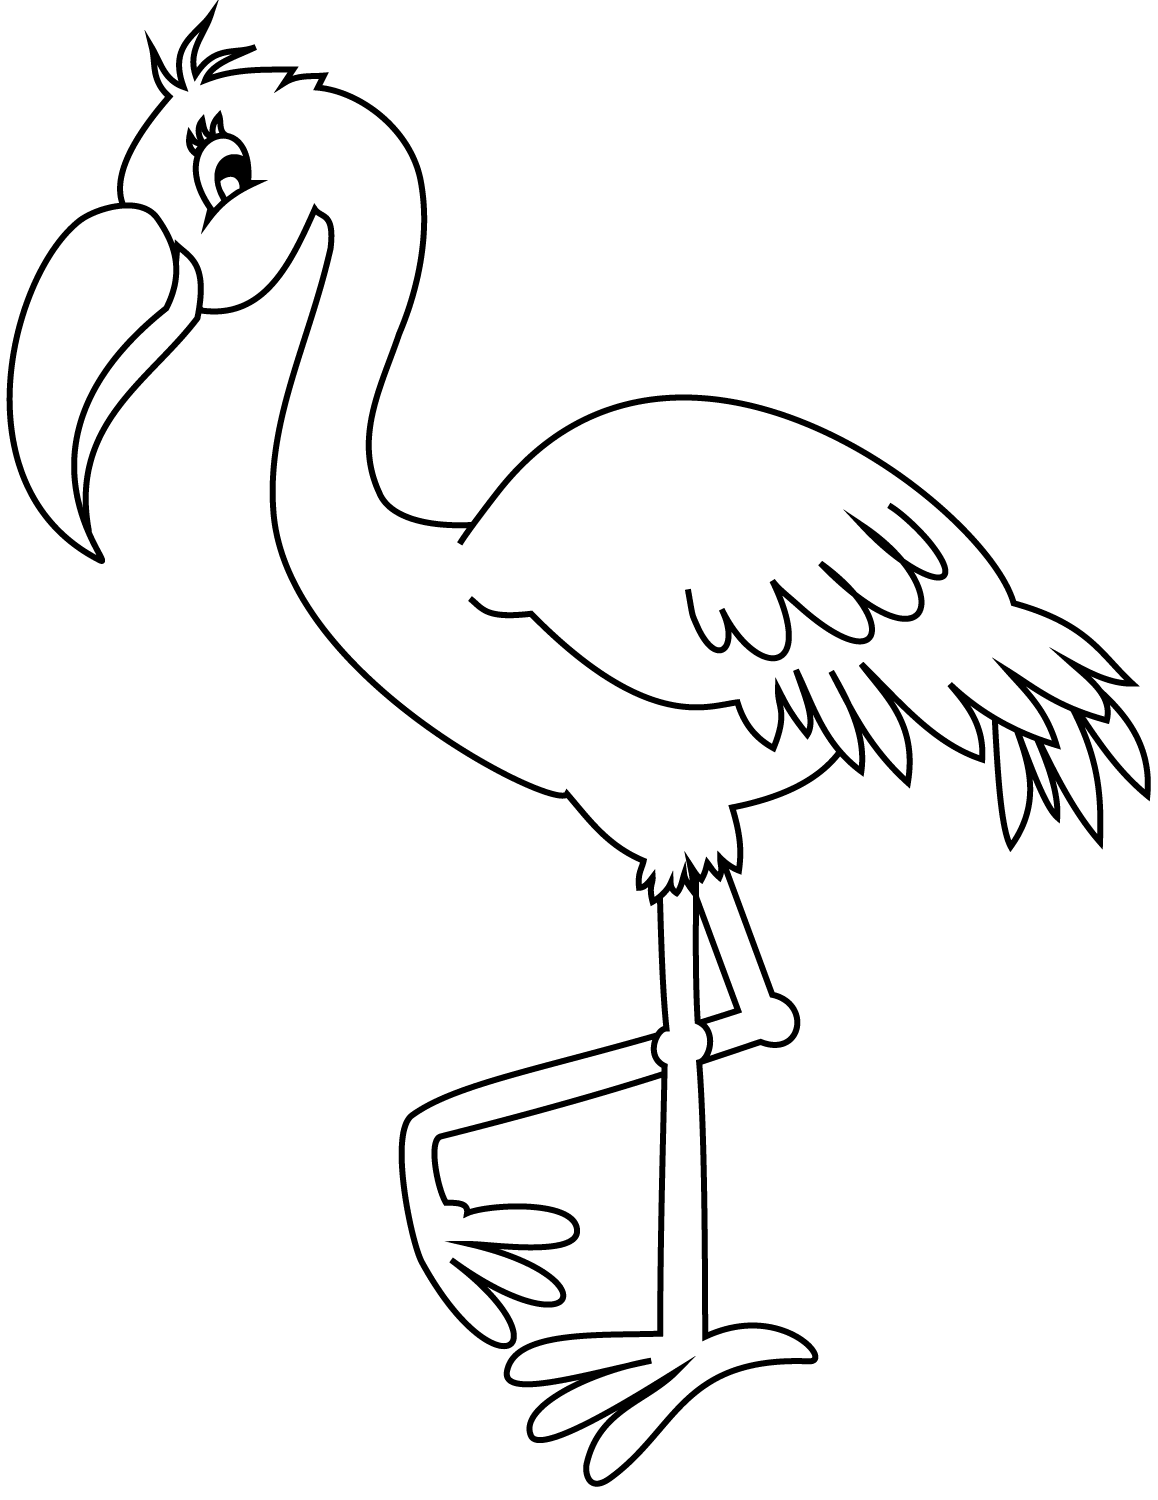 coloring pages flamingo pink flamingo coloring page at getdrawings free download flamingo coloring pages